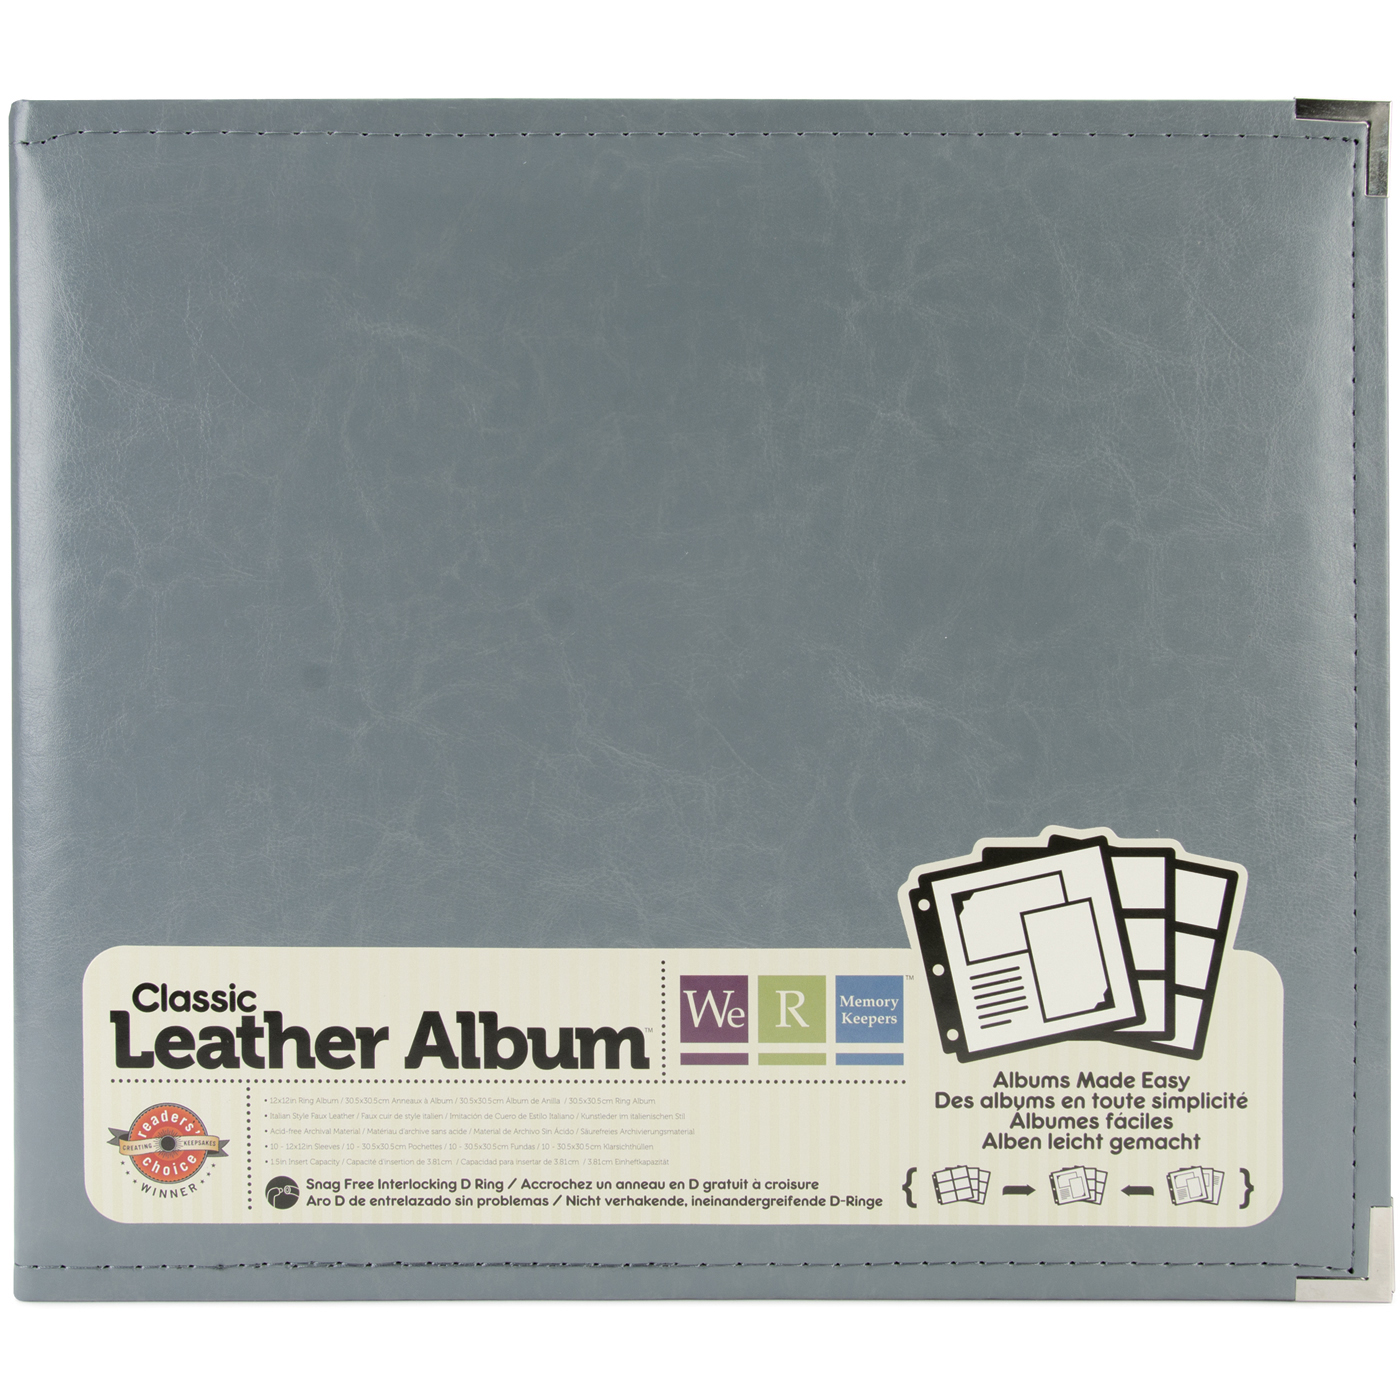 We R Leather Album - Charcoal